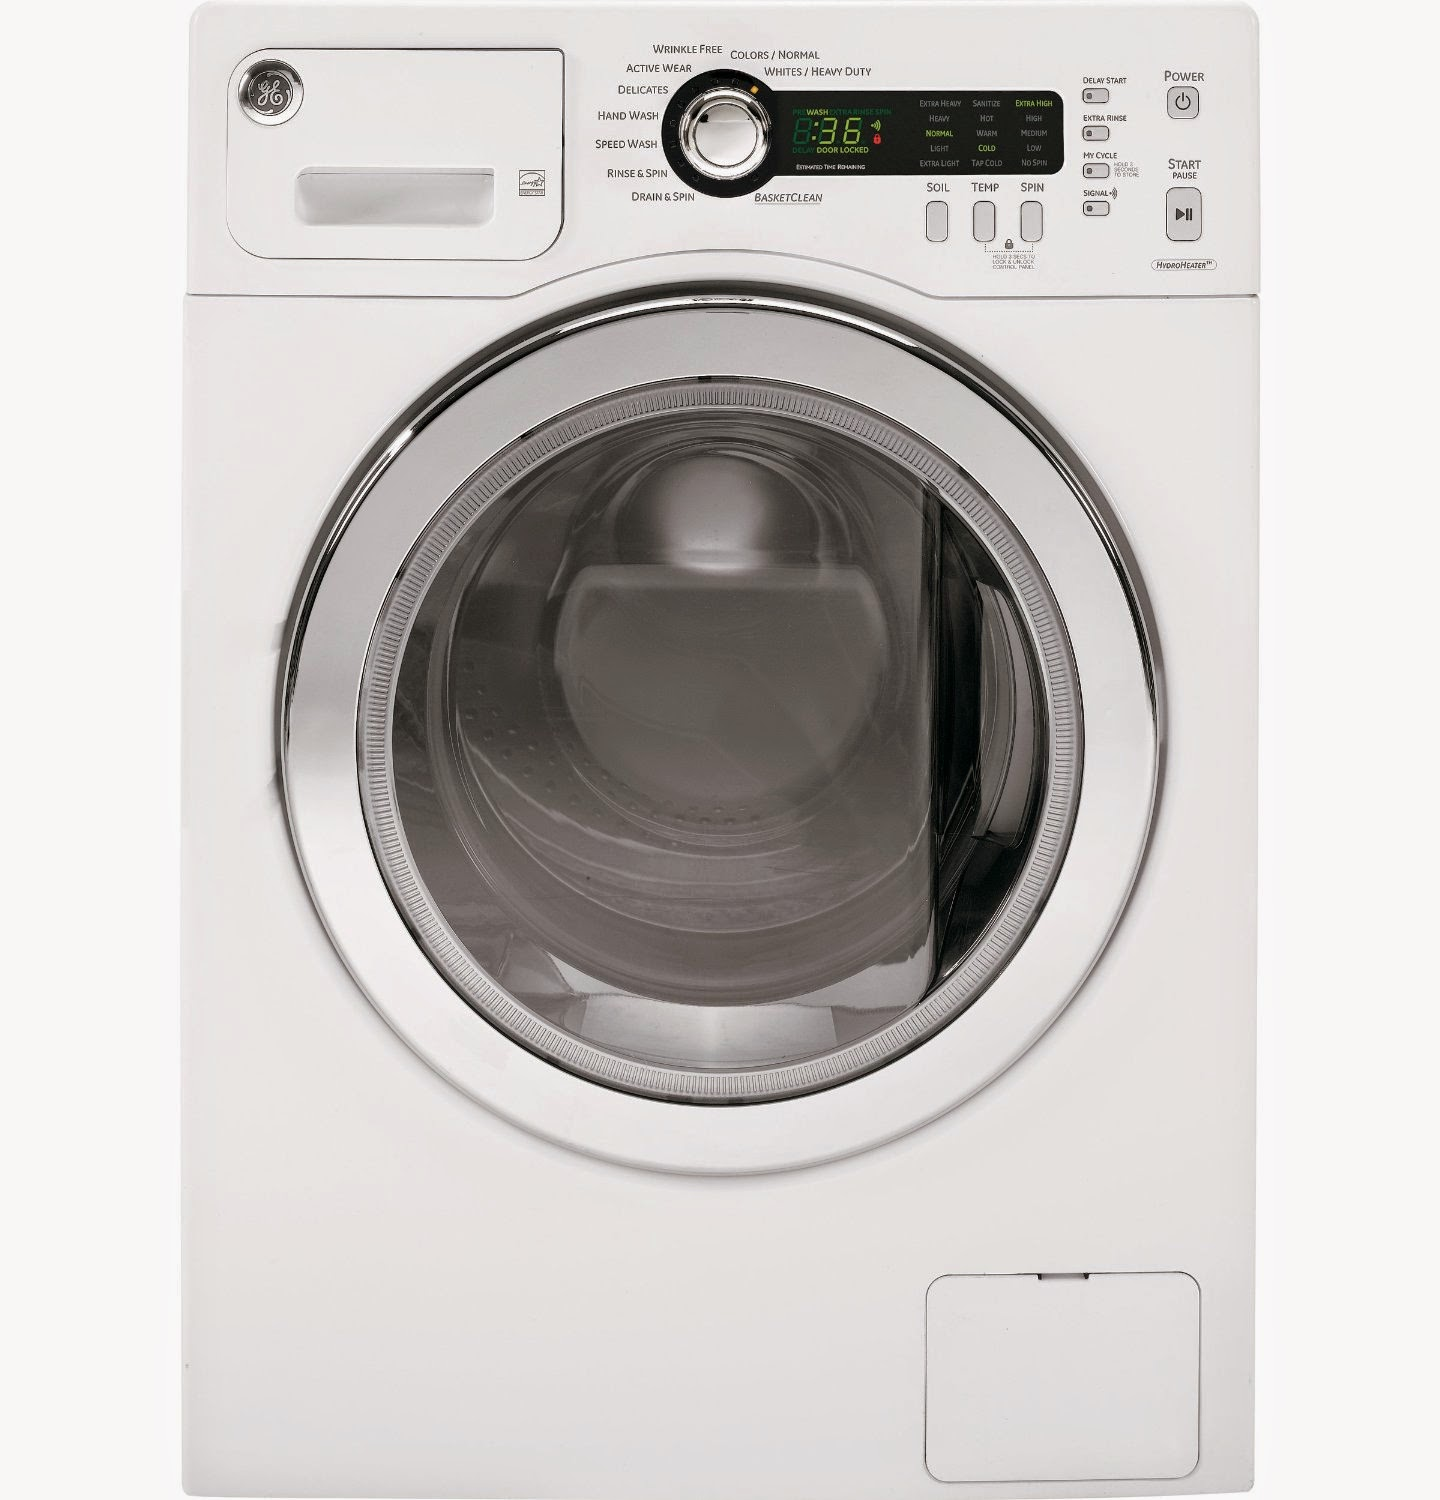 Washer And Dryer Stackable Compact Washer And Dryer Stackable